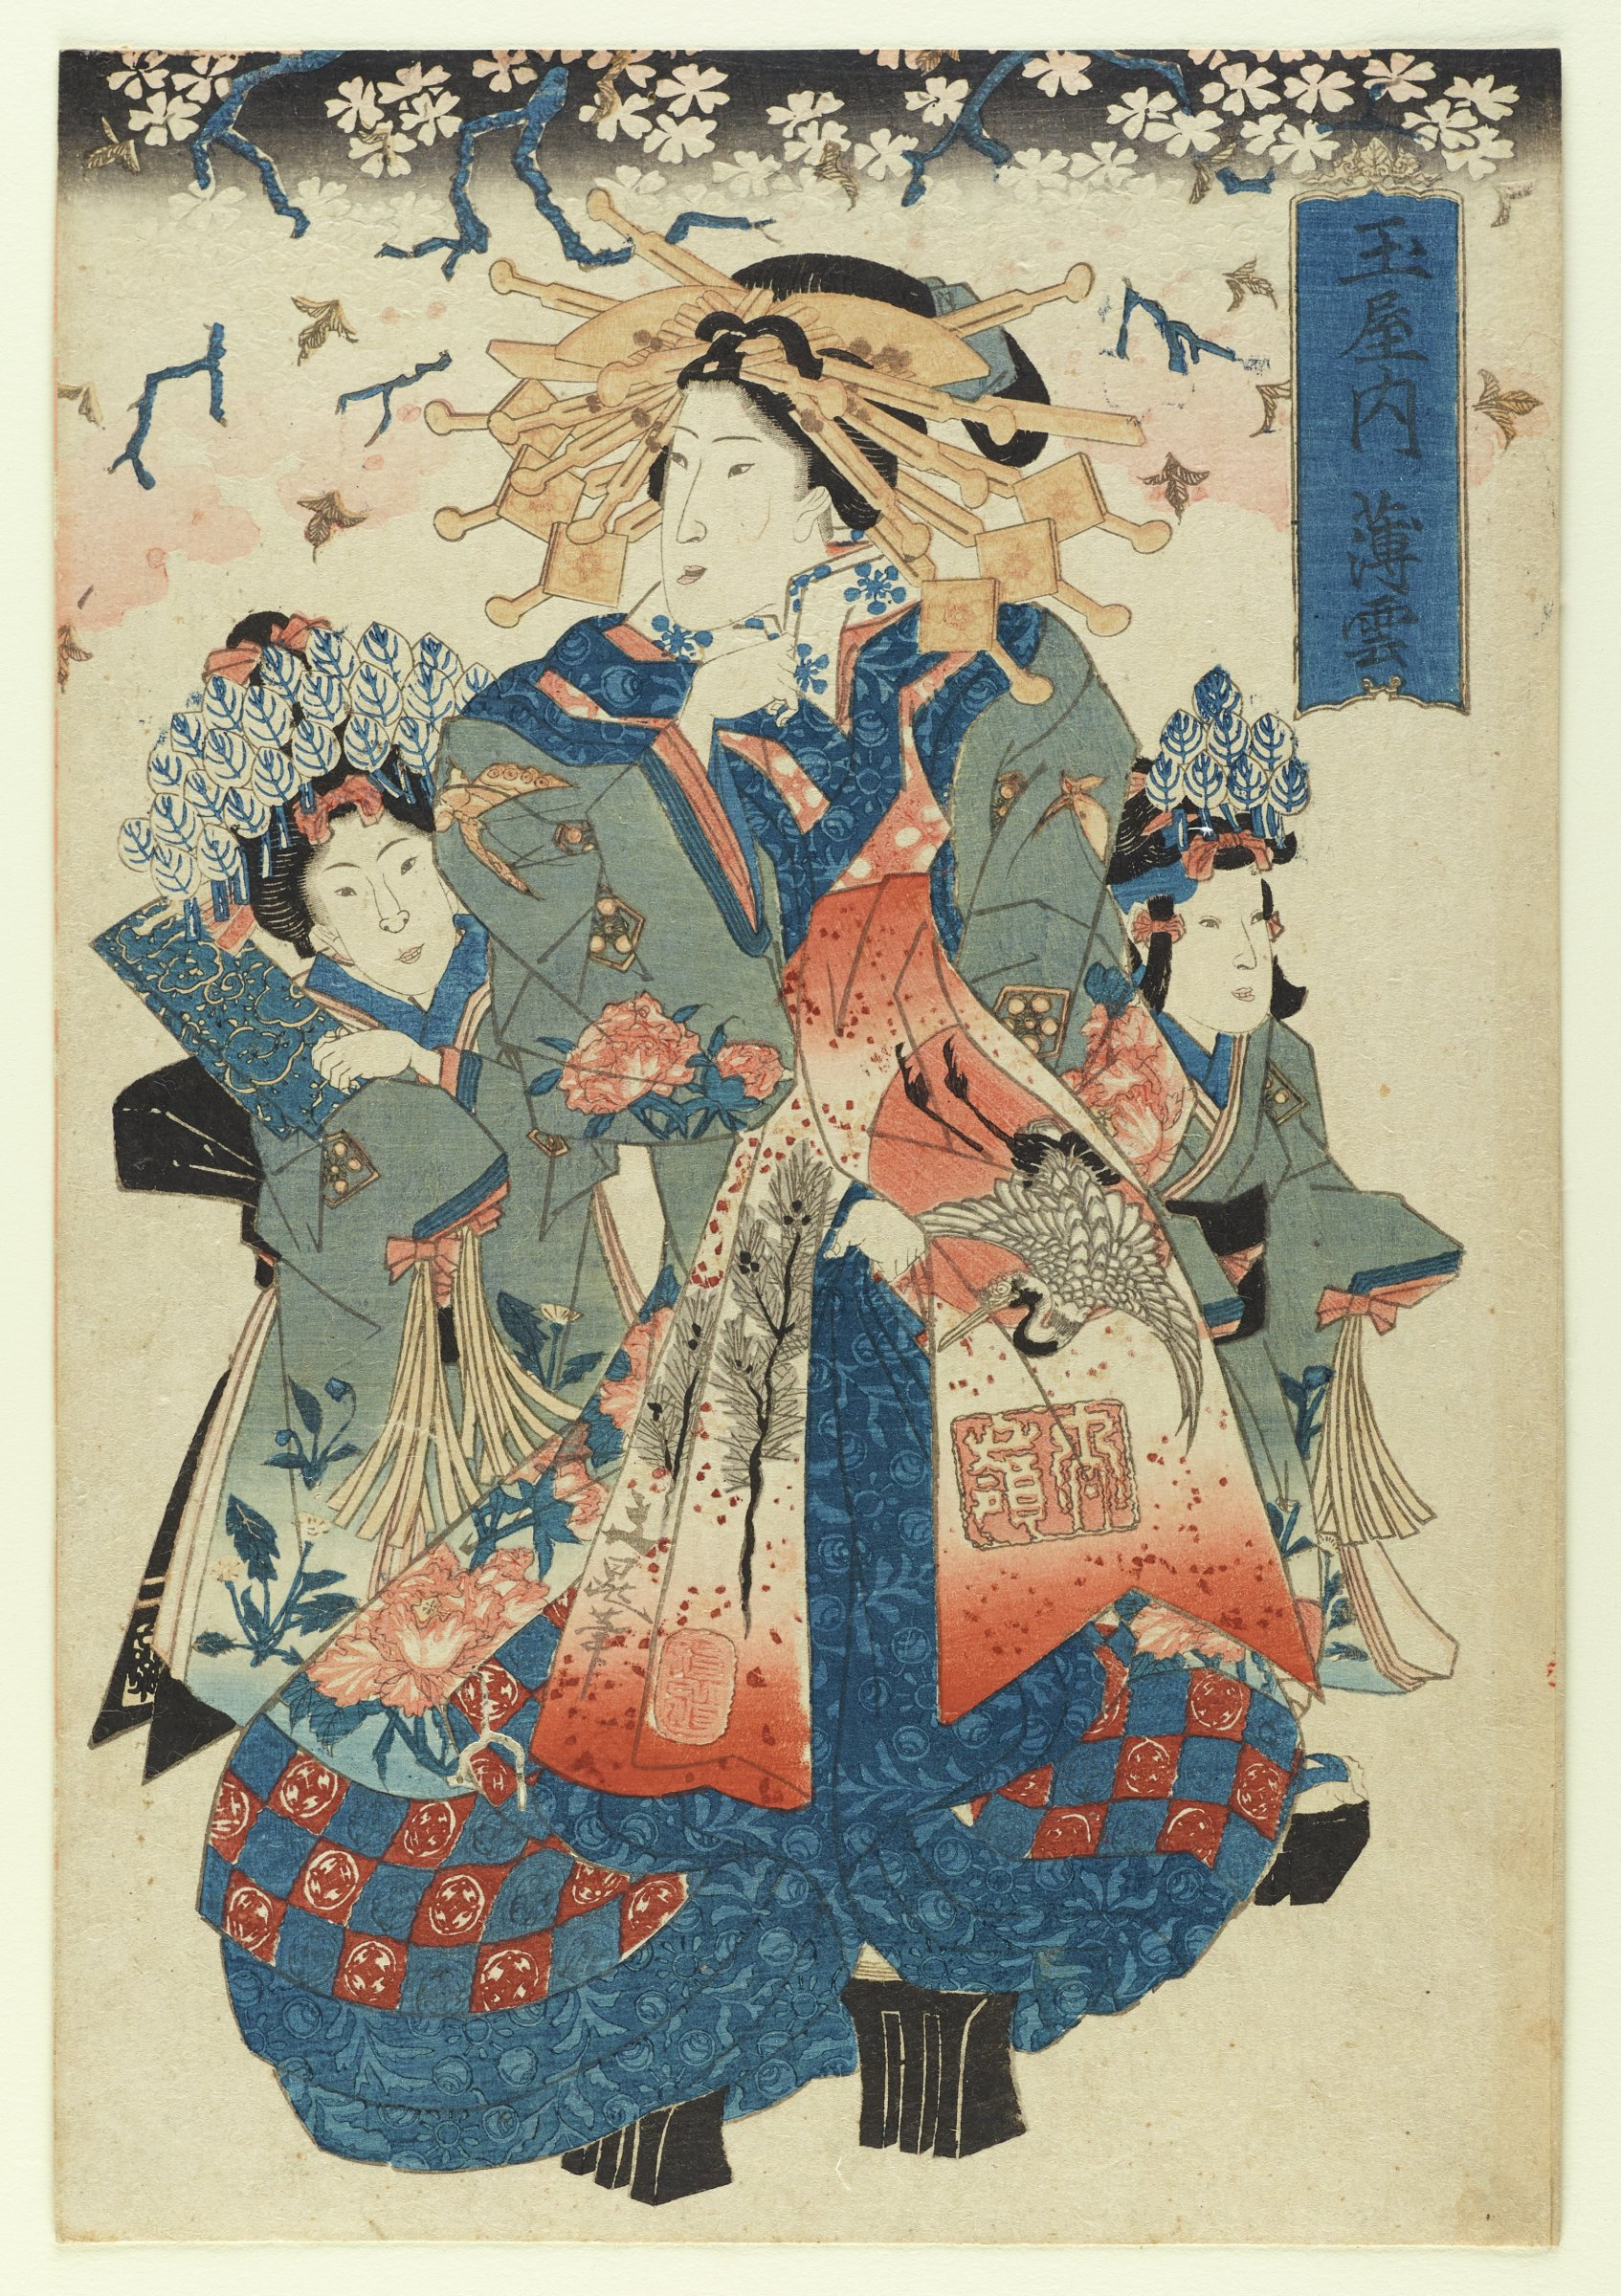 Parade of Courtesans, Nagato of the Owari, Tamakatsu of the Tamayaand, and Usugumo of the Tamaya, Japan, ink and color on paper (triptych)